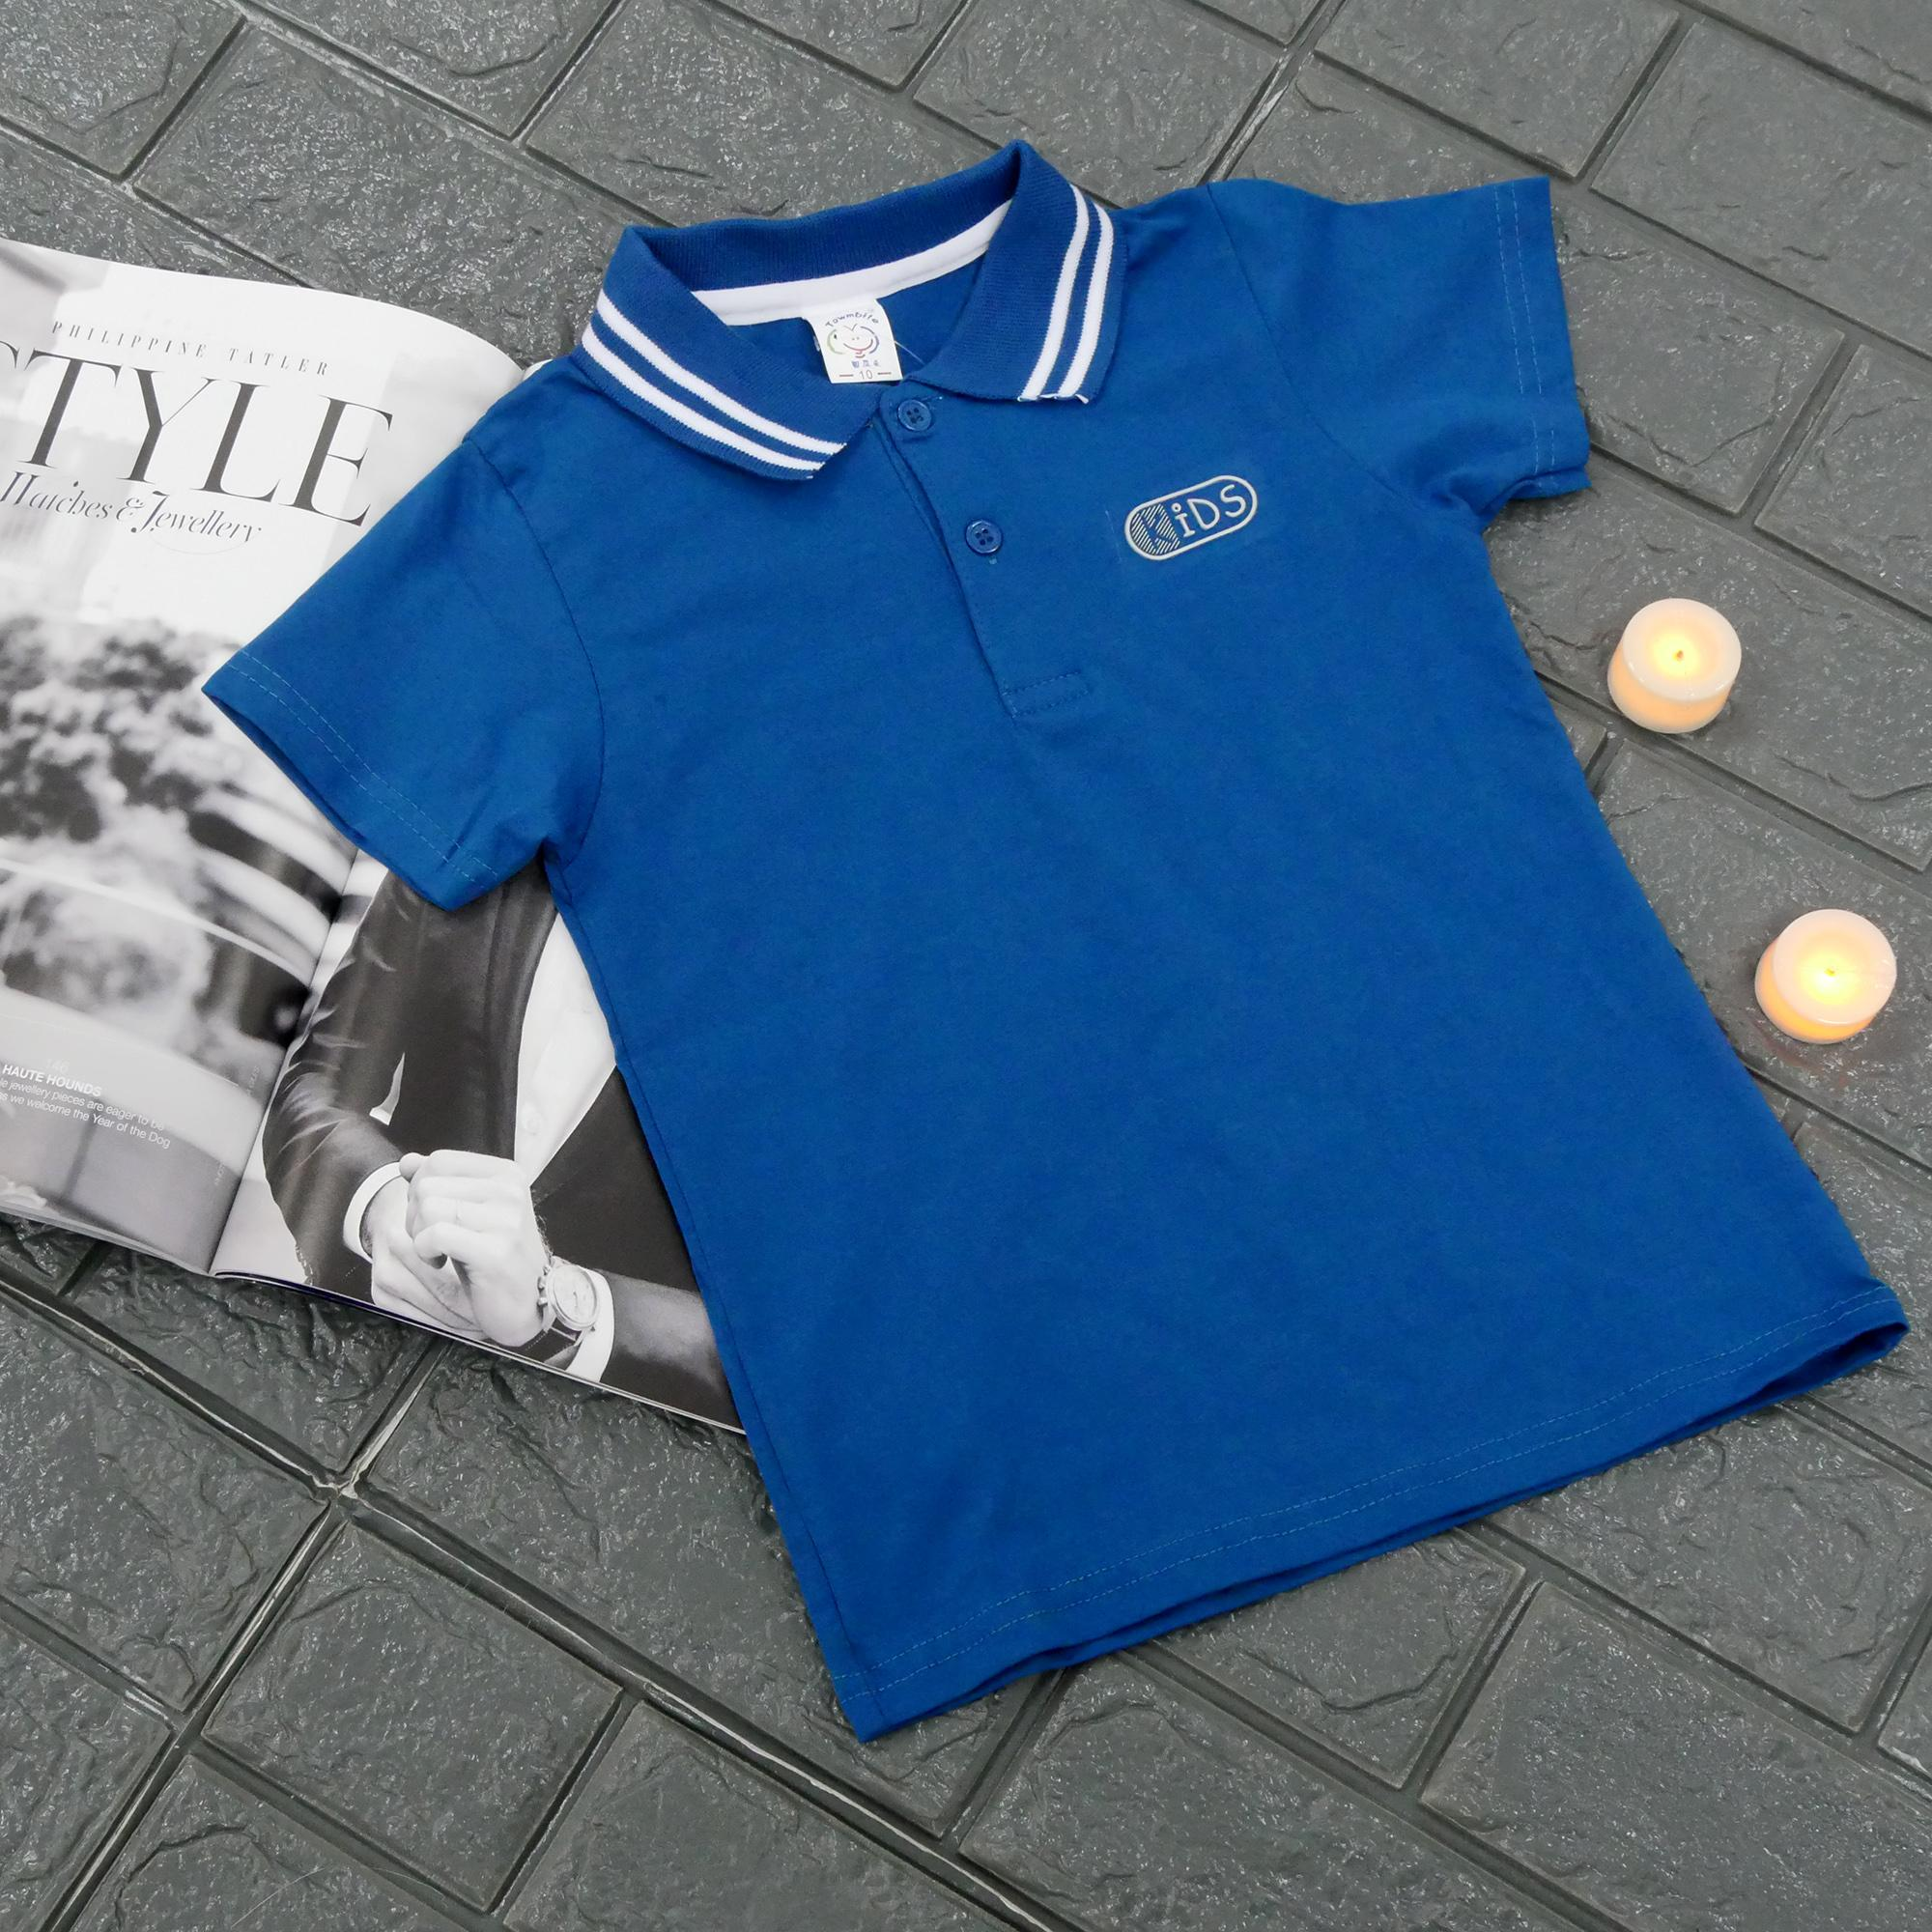 How Much Does A Polo Shirt Cost To Make Rldm